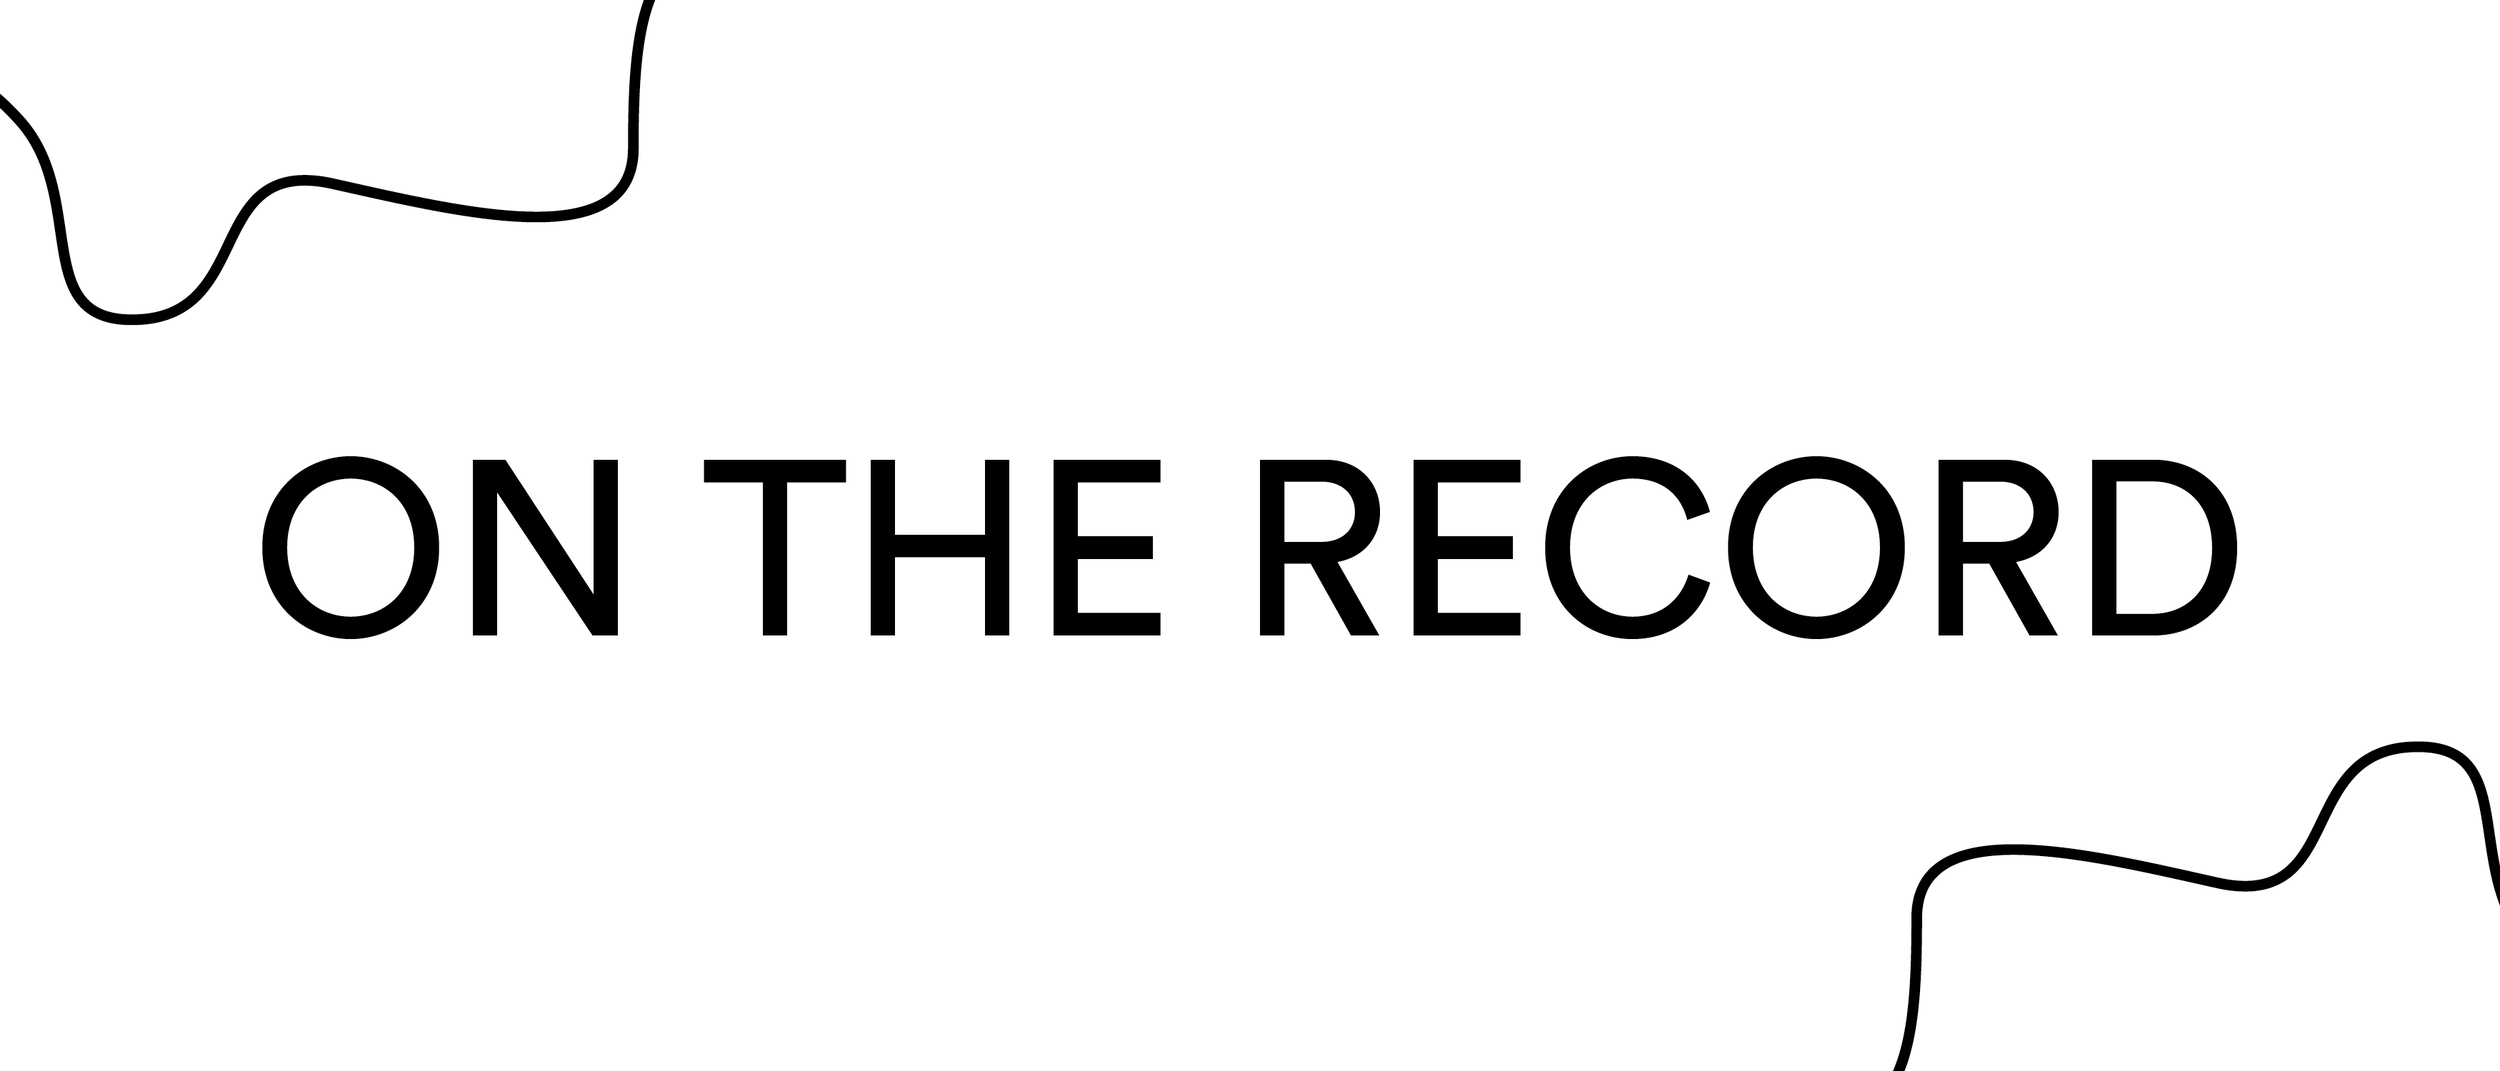 ontherecord_banner.png